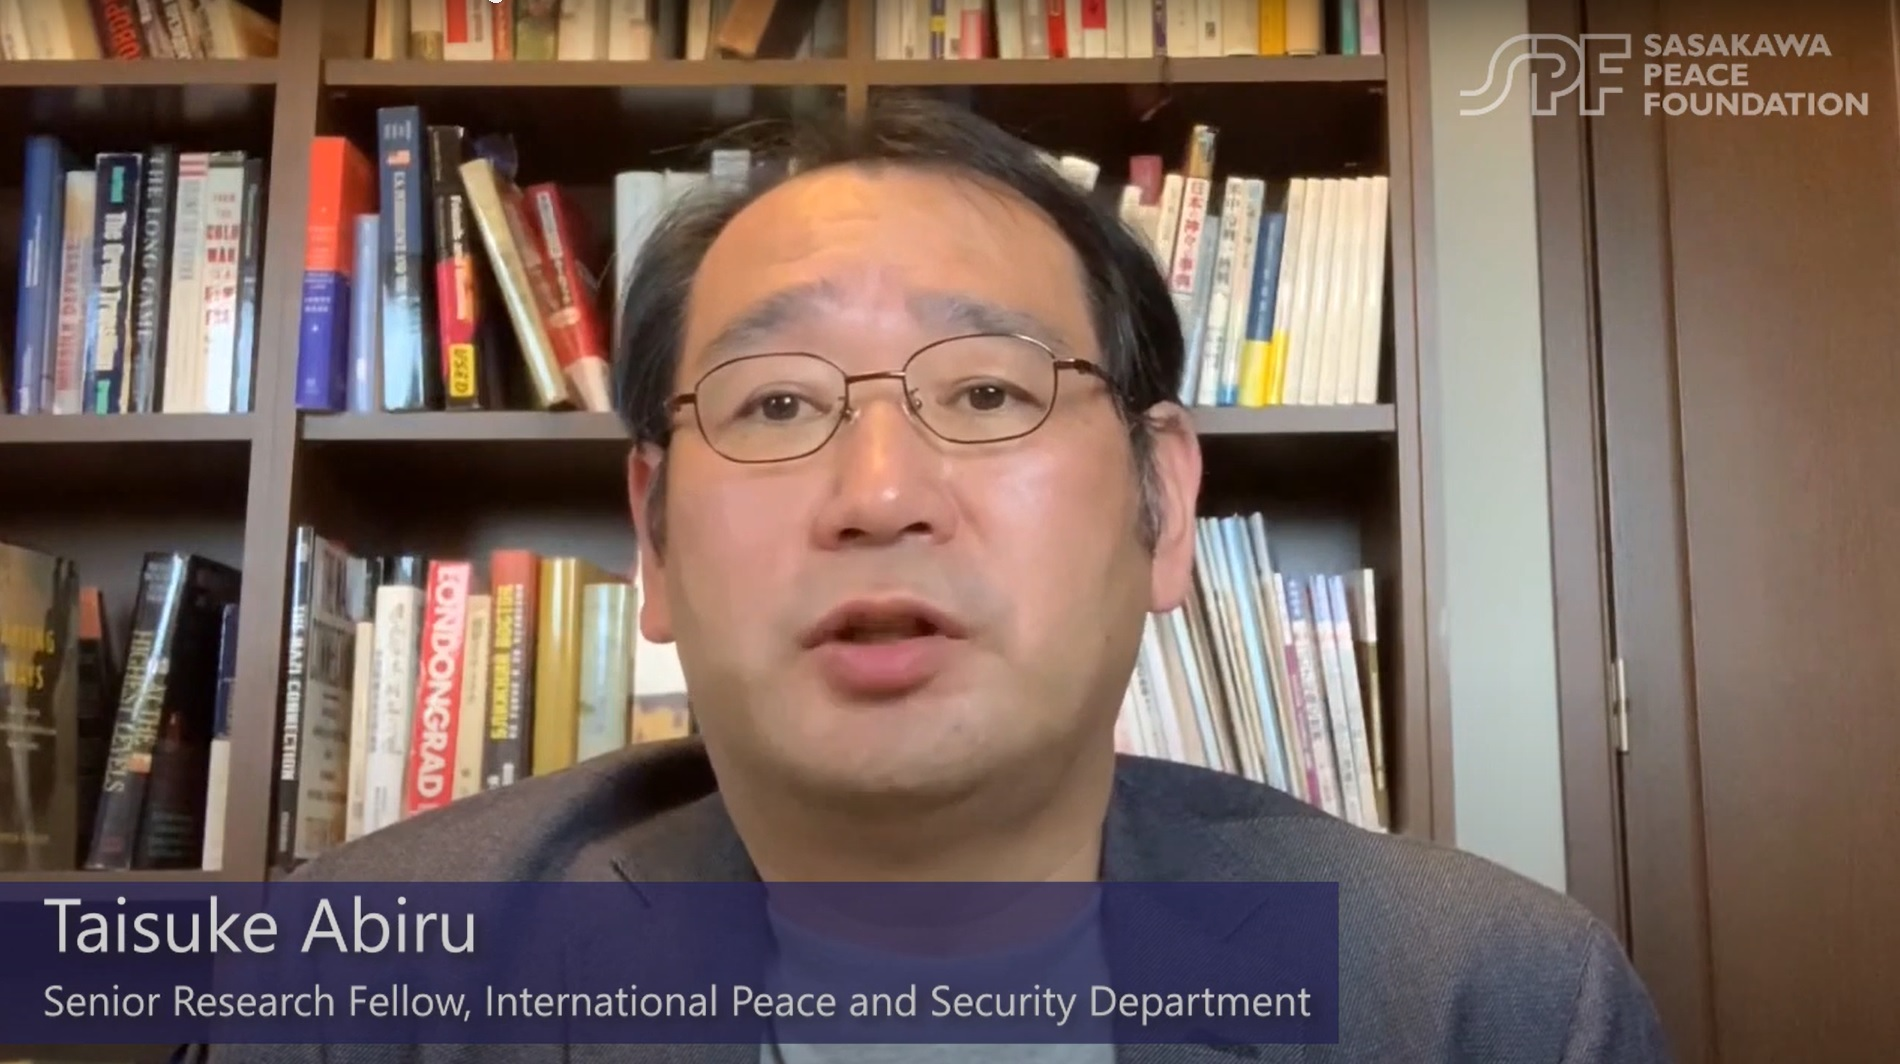 Russian Foreign Policy and COVID-19: Interview with Senior Research Fellow Taisuke Abiru